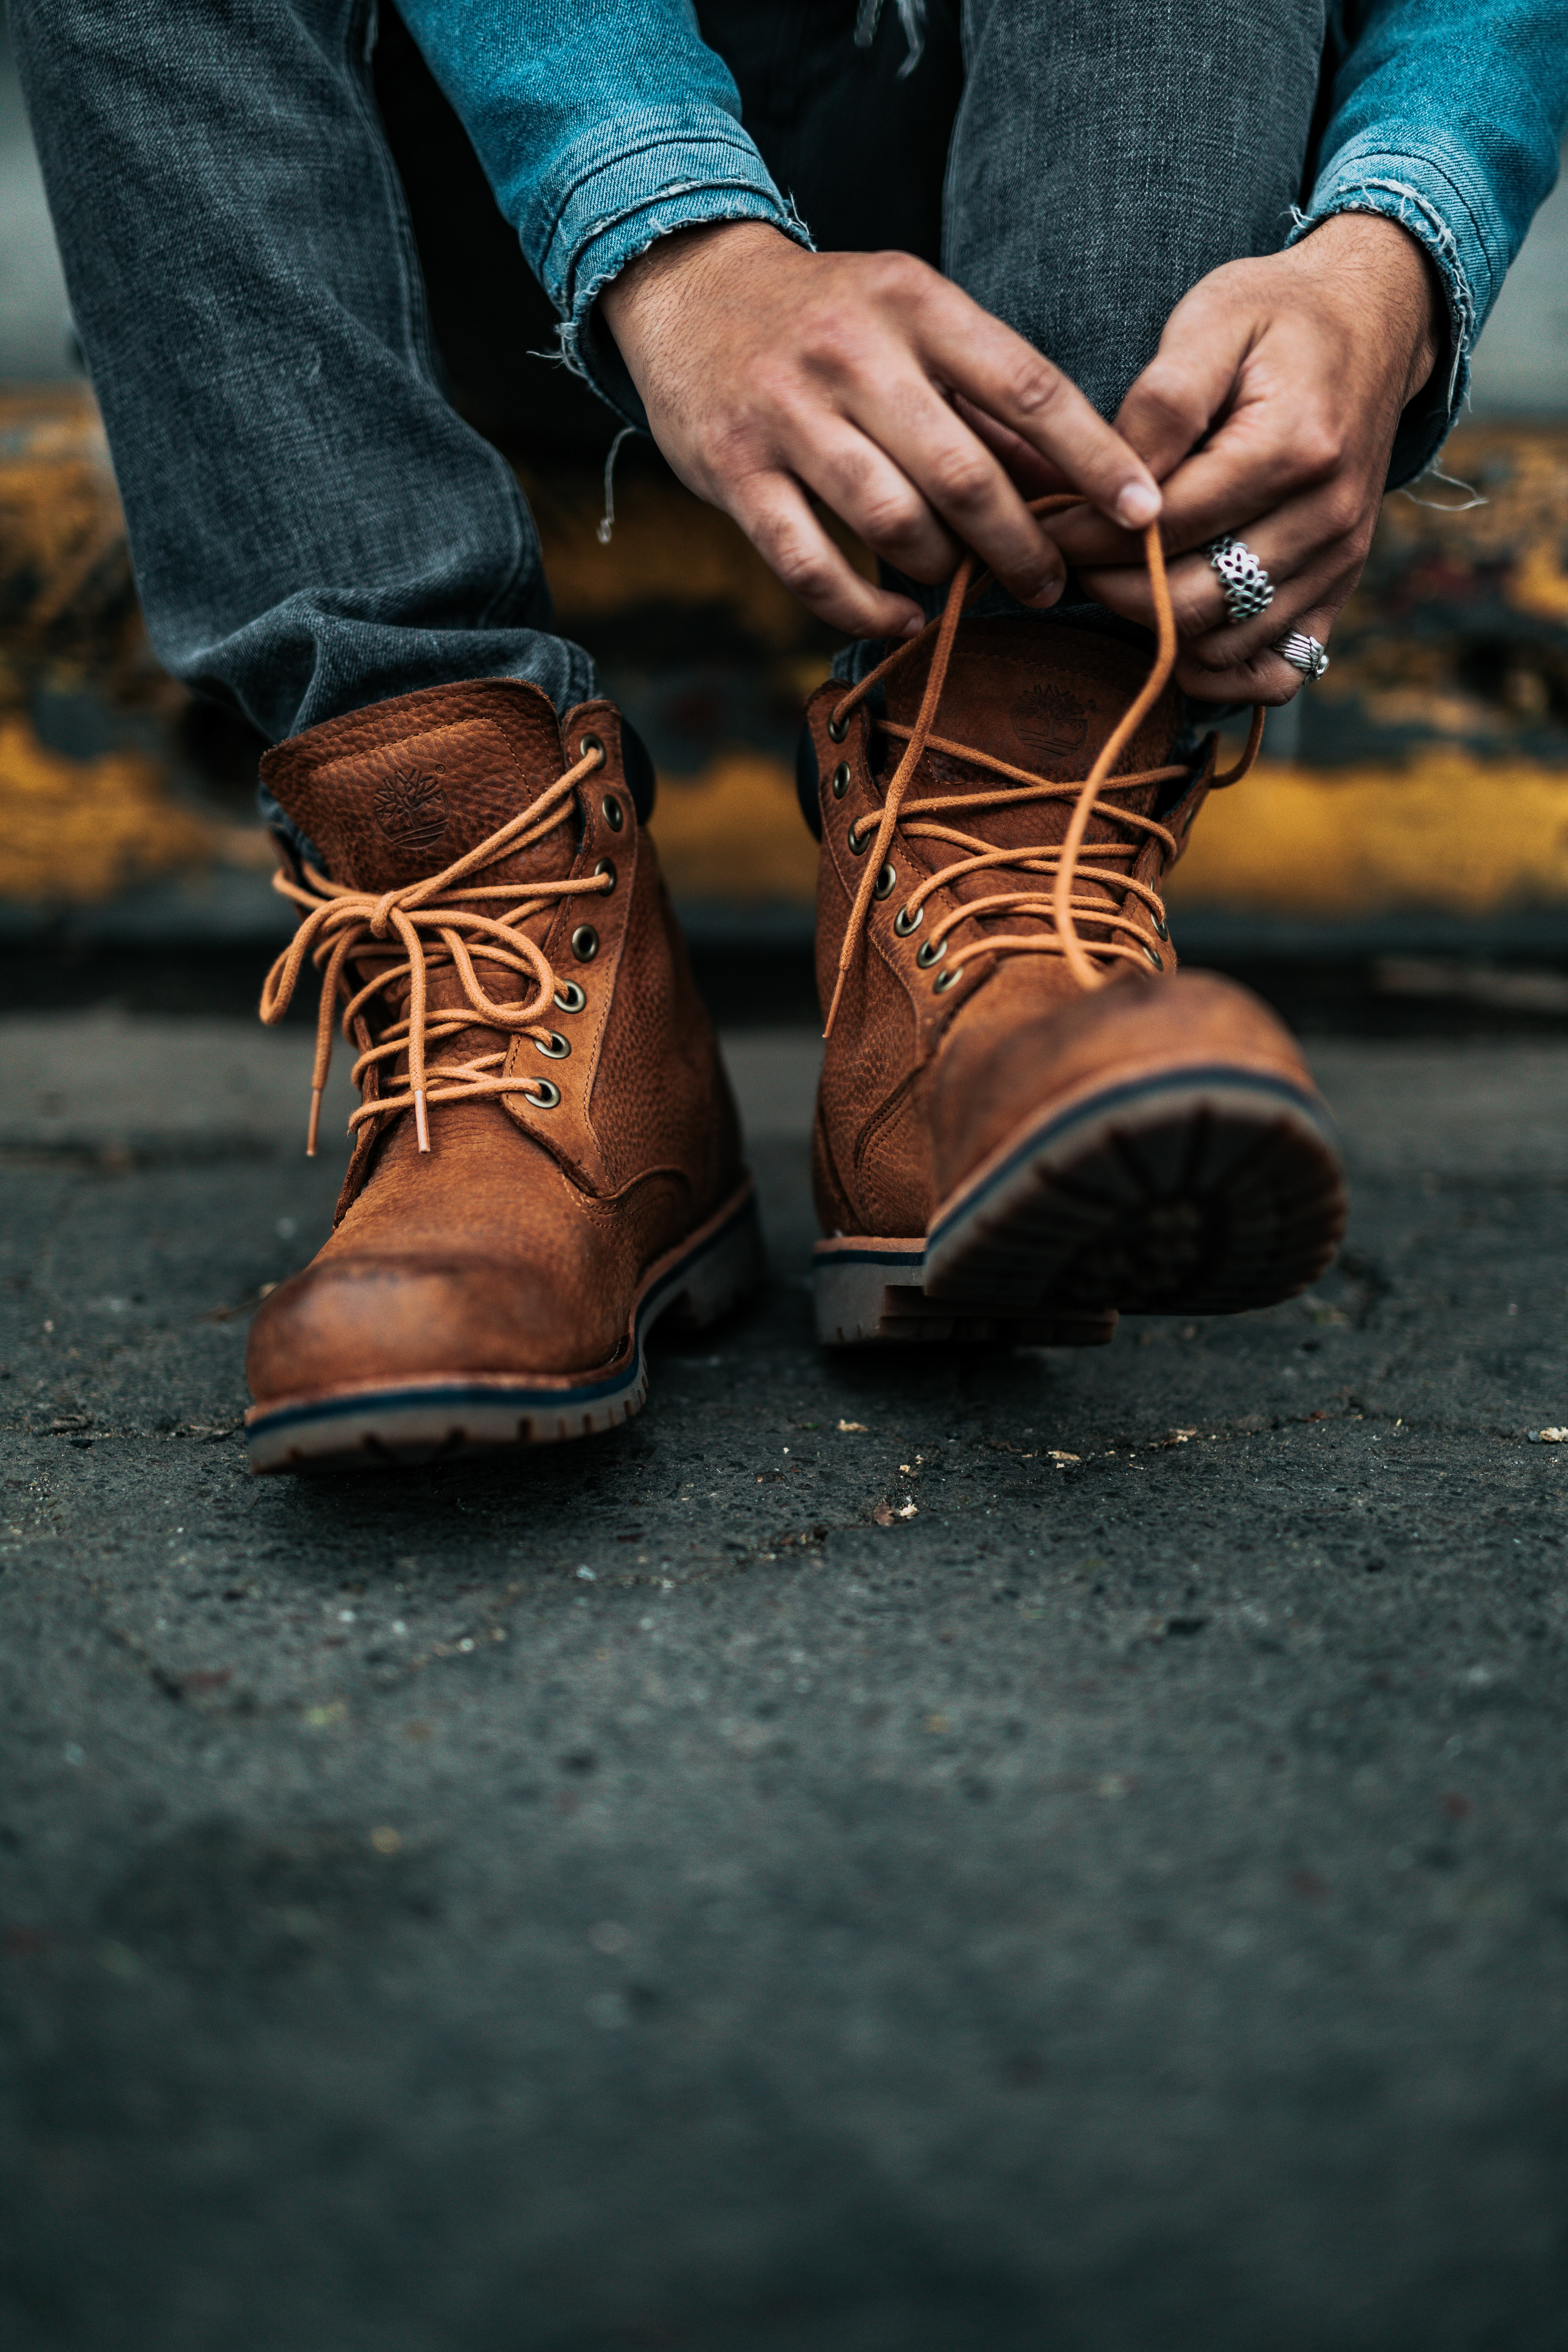 photography of person lacing his/her boots